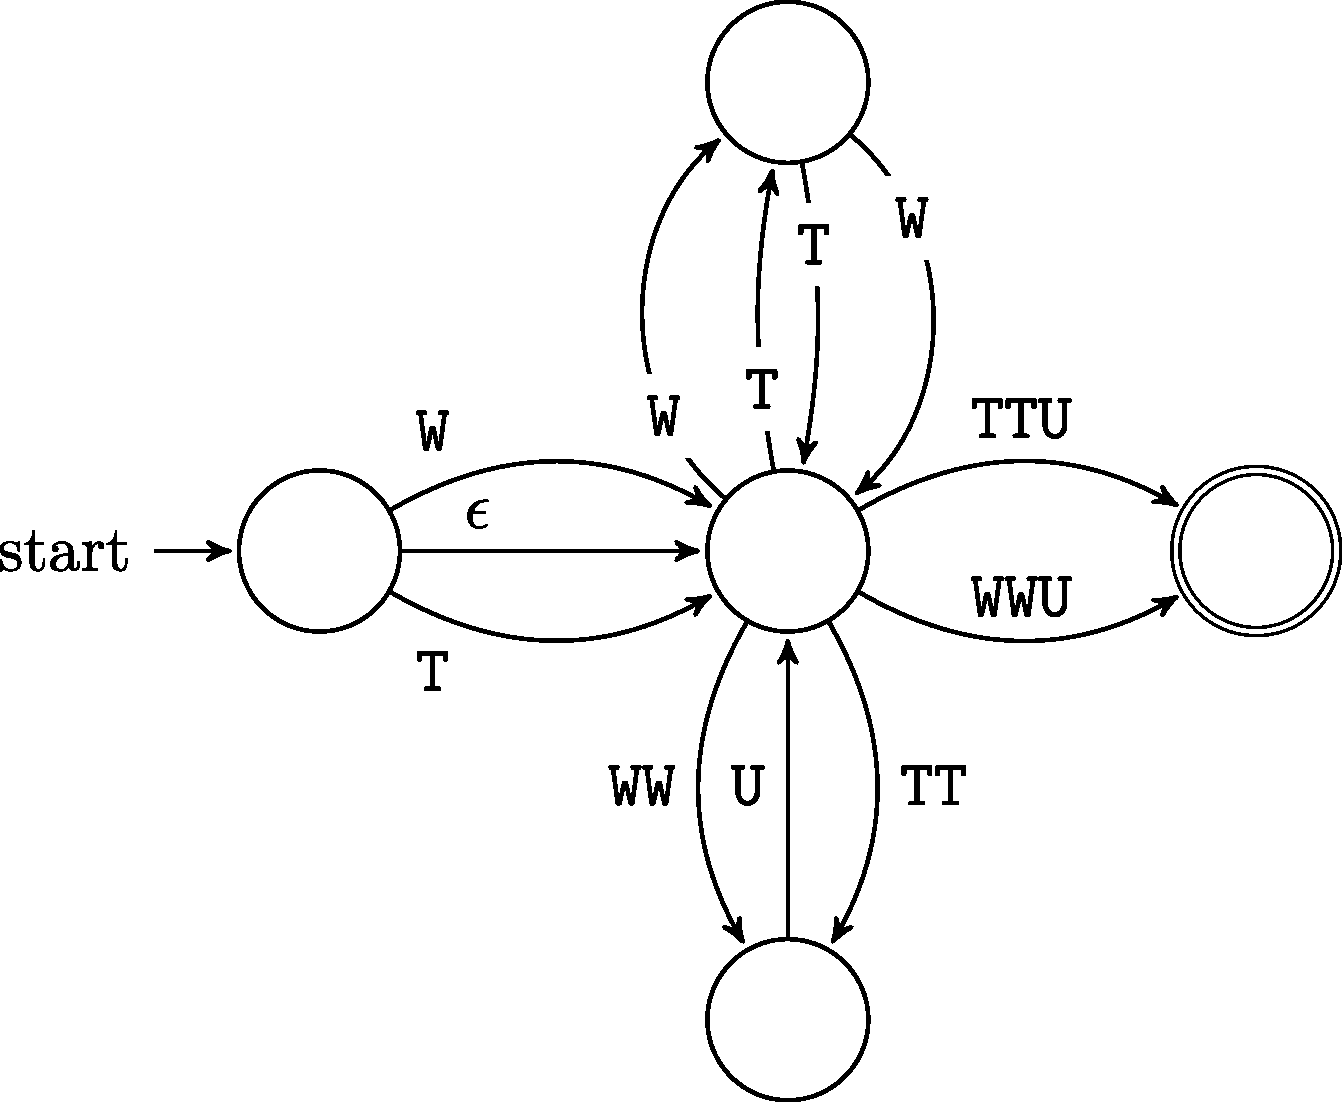 More Ties Than We Thought Peerj Wiring Symbols Australia Classification Of The Tie Knot Language